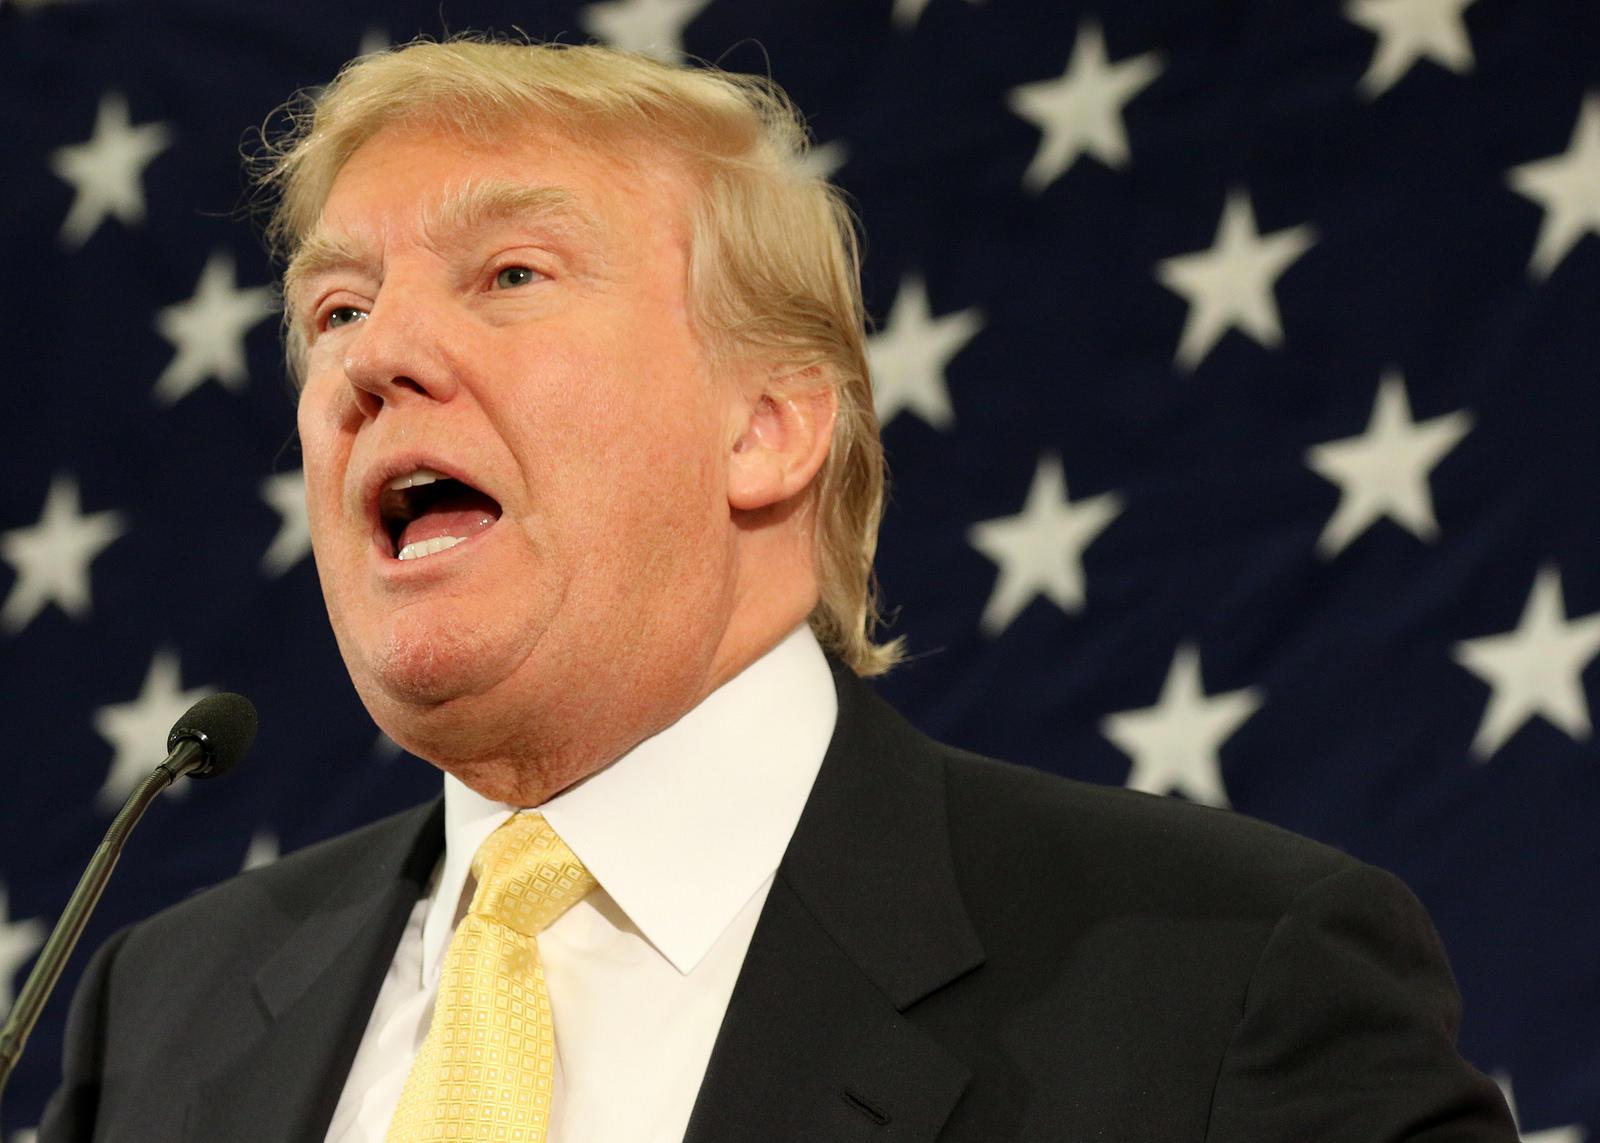 leadership styles donald trump 6 key leadership traits pope francis and donald trump authoritative leadership of the past while pope francis represents a more contemporary empathetic and collaborative style, according to john gerzema, co if donald trump loses his constituency, says maccoby, his charisma will.